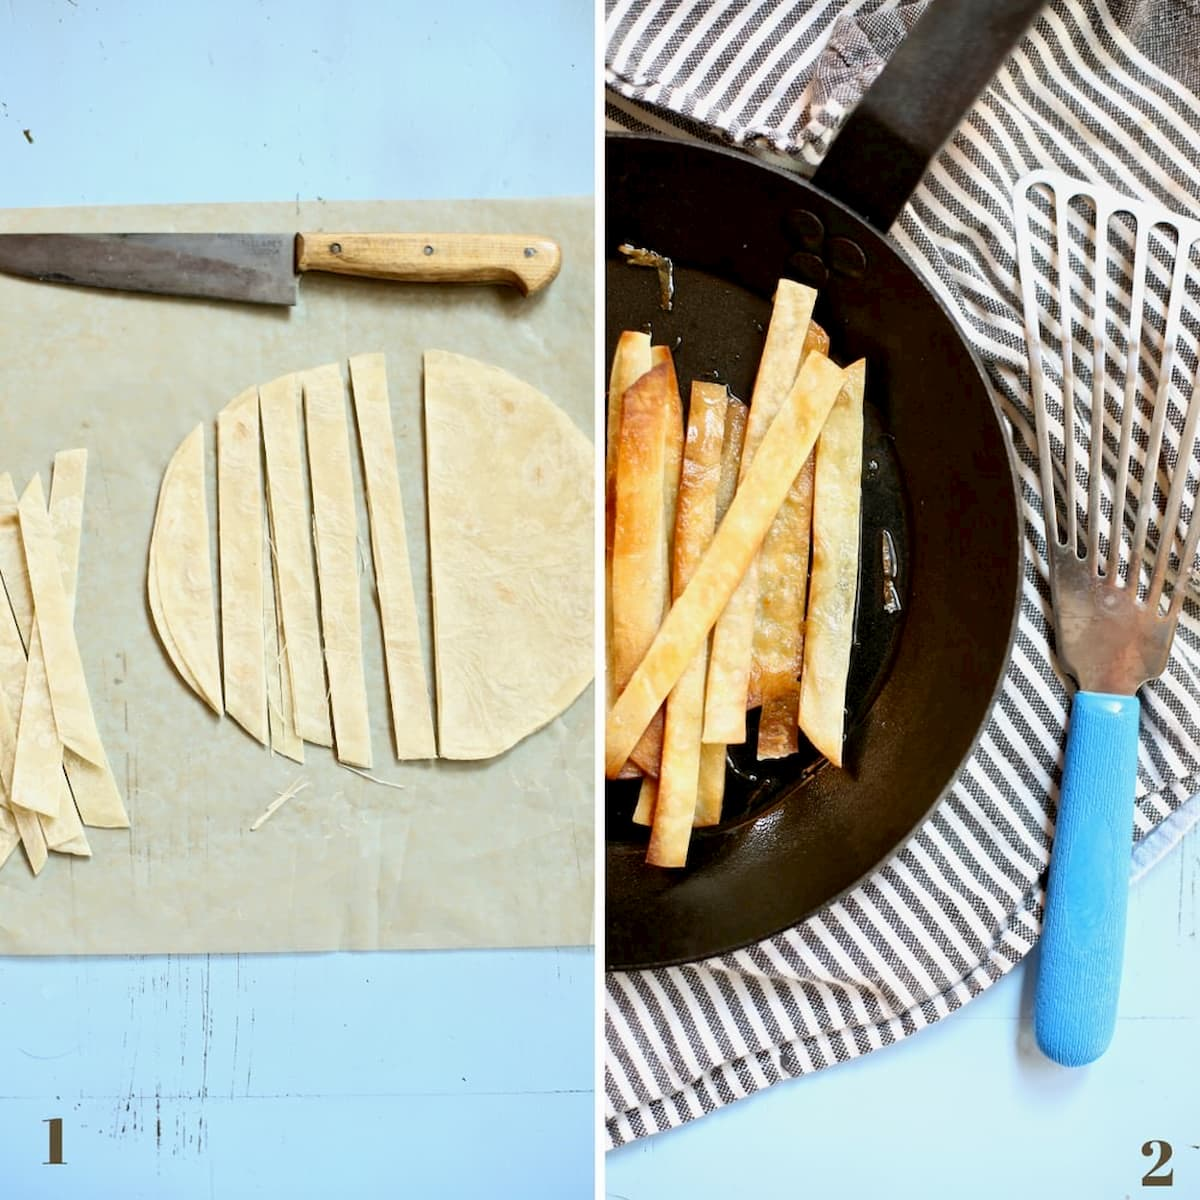 a side by side photo of two processes: cutting a tortilla with a knife and frying them in a pan